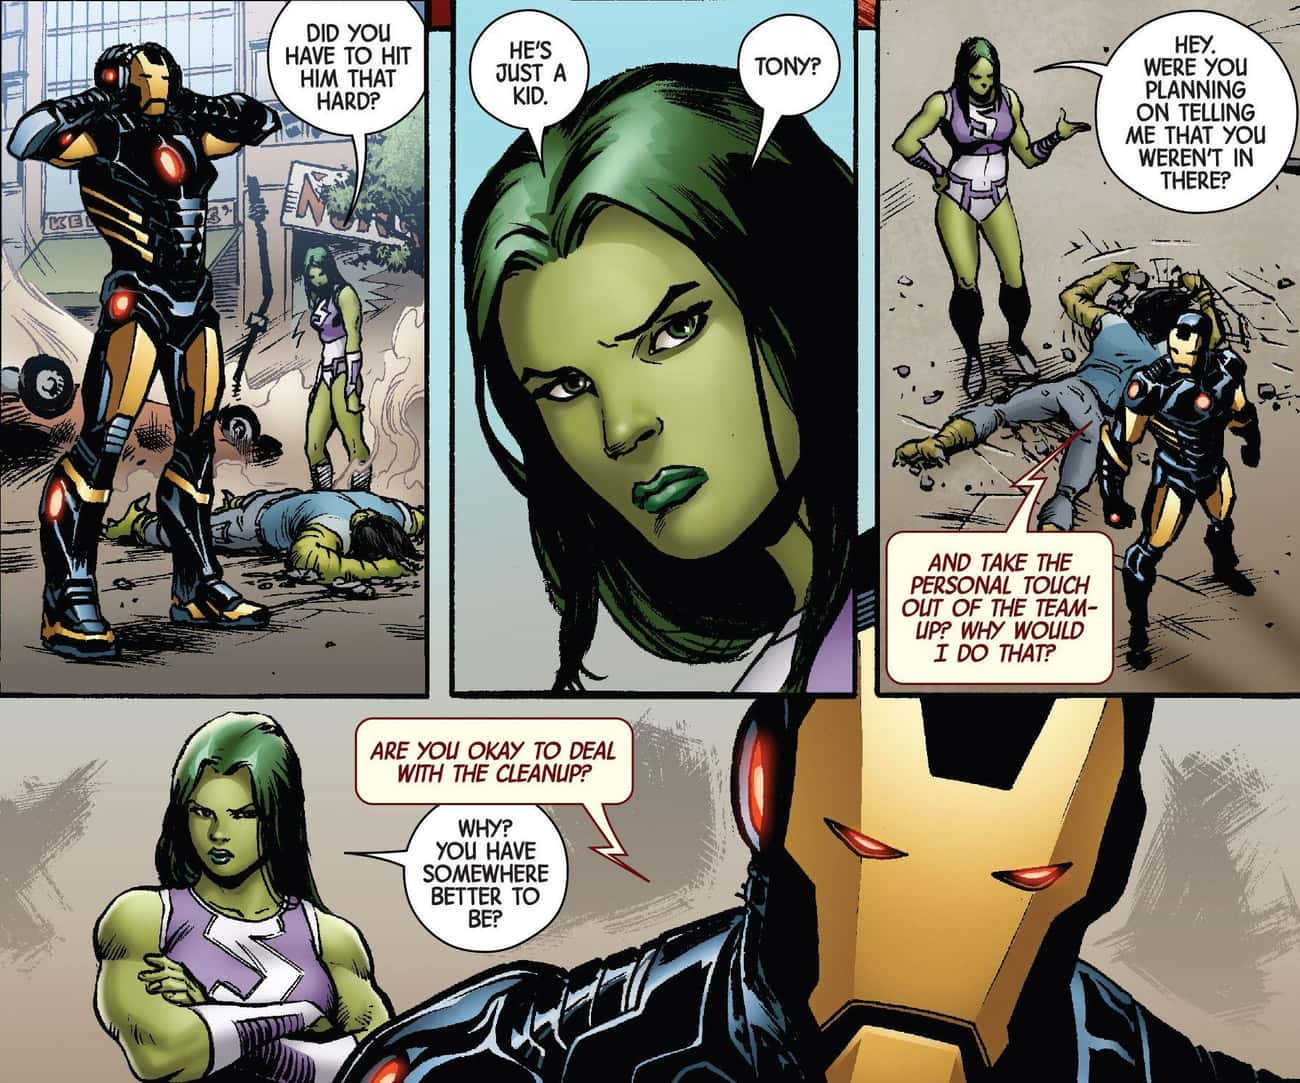 He Treats His Teammates Horrib is listed (or ranked) 3 on the list 14 Reasons Why Iron Man Is The Most Overrated Avenger